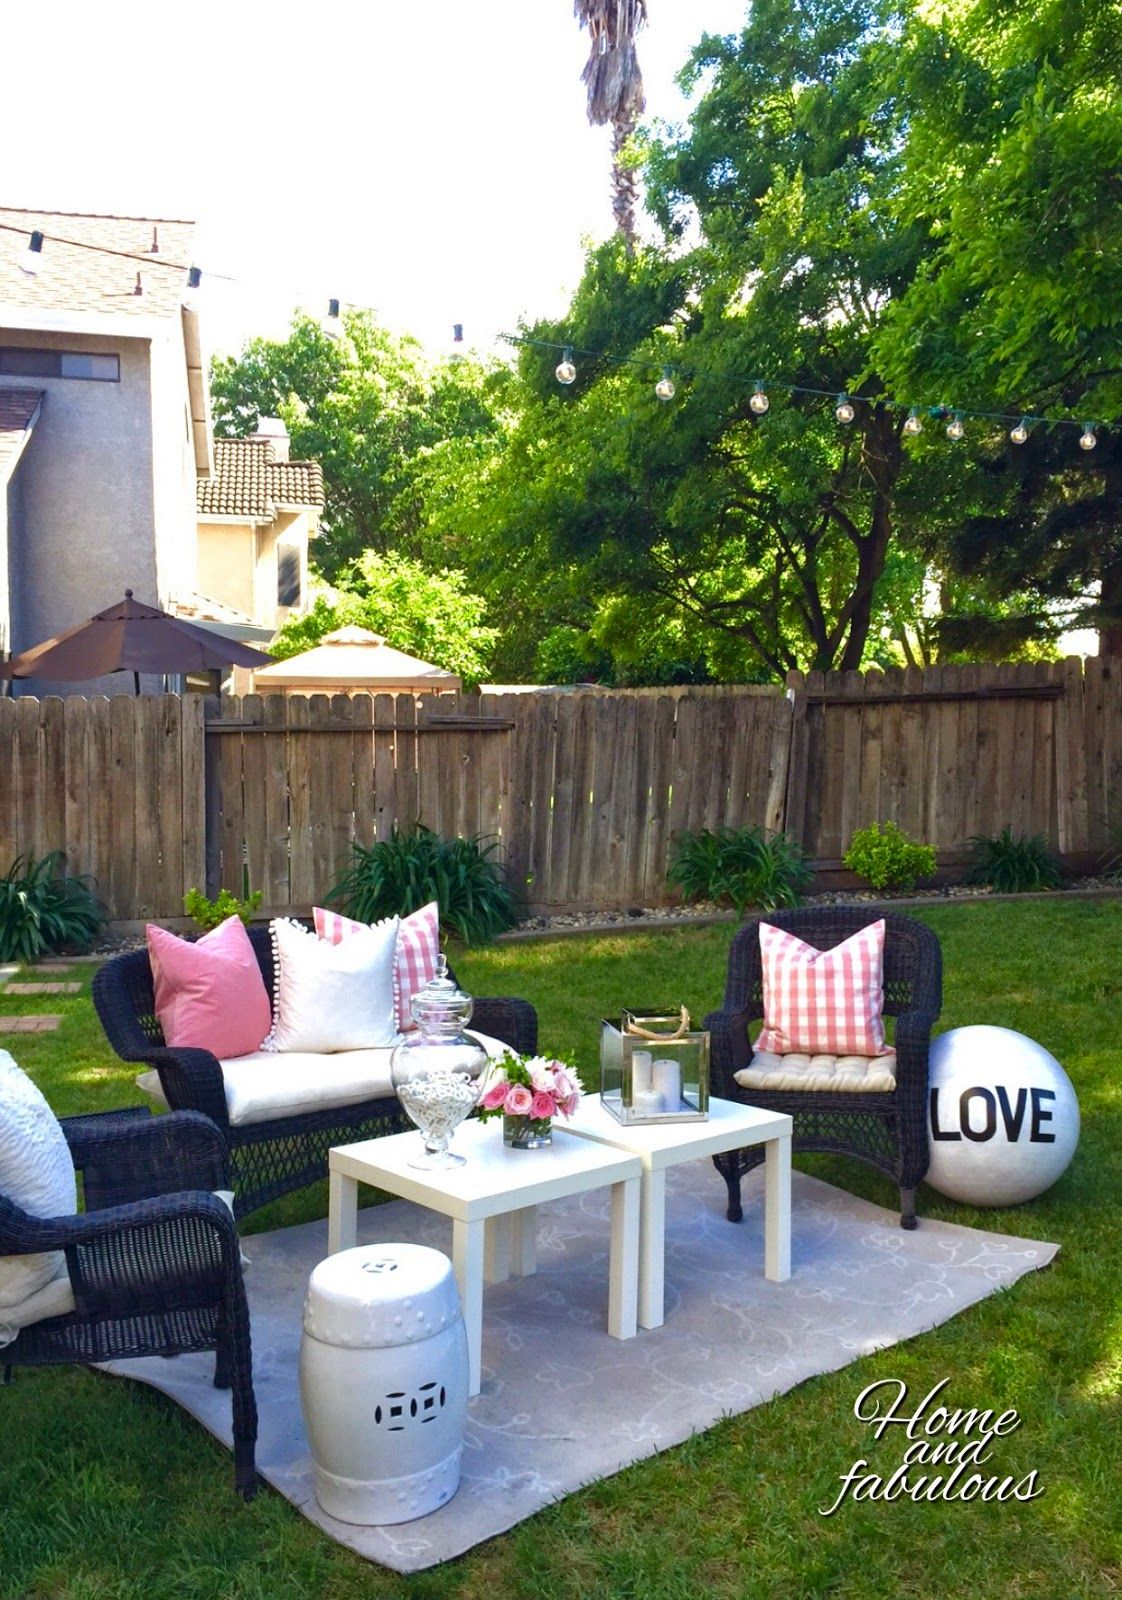 Genial Garden Stool And Accessories From HomeGoods Make This Patio More Inviting  (Sponsored Pin)